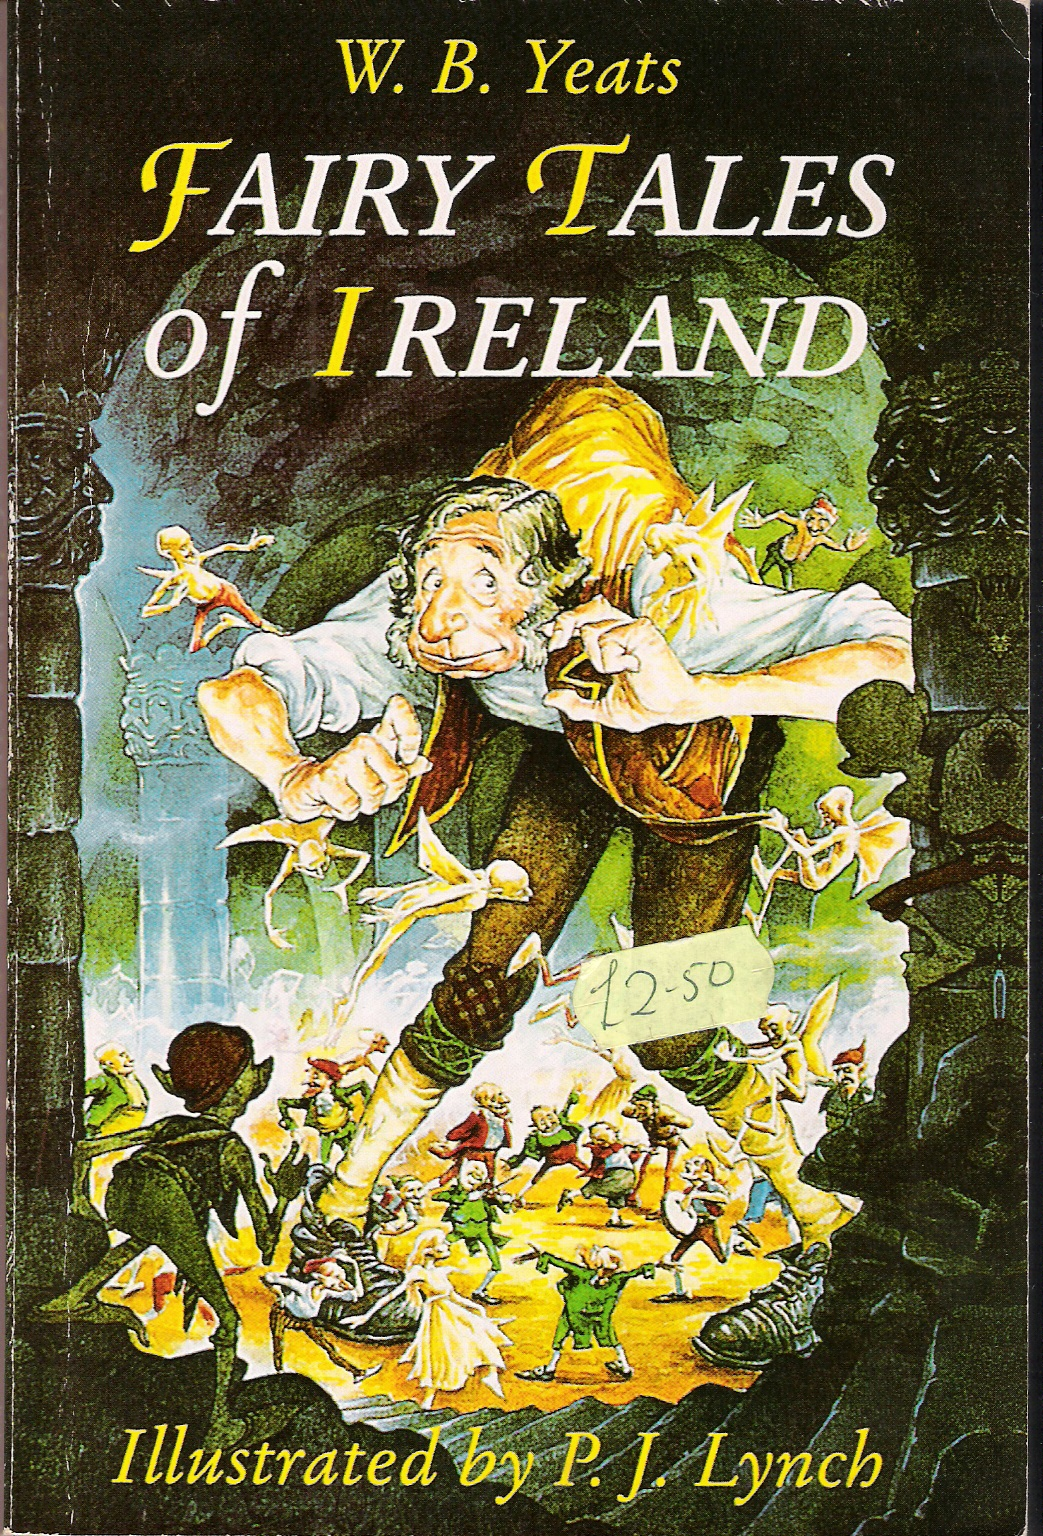 The Fairy Tales of Ireland